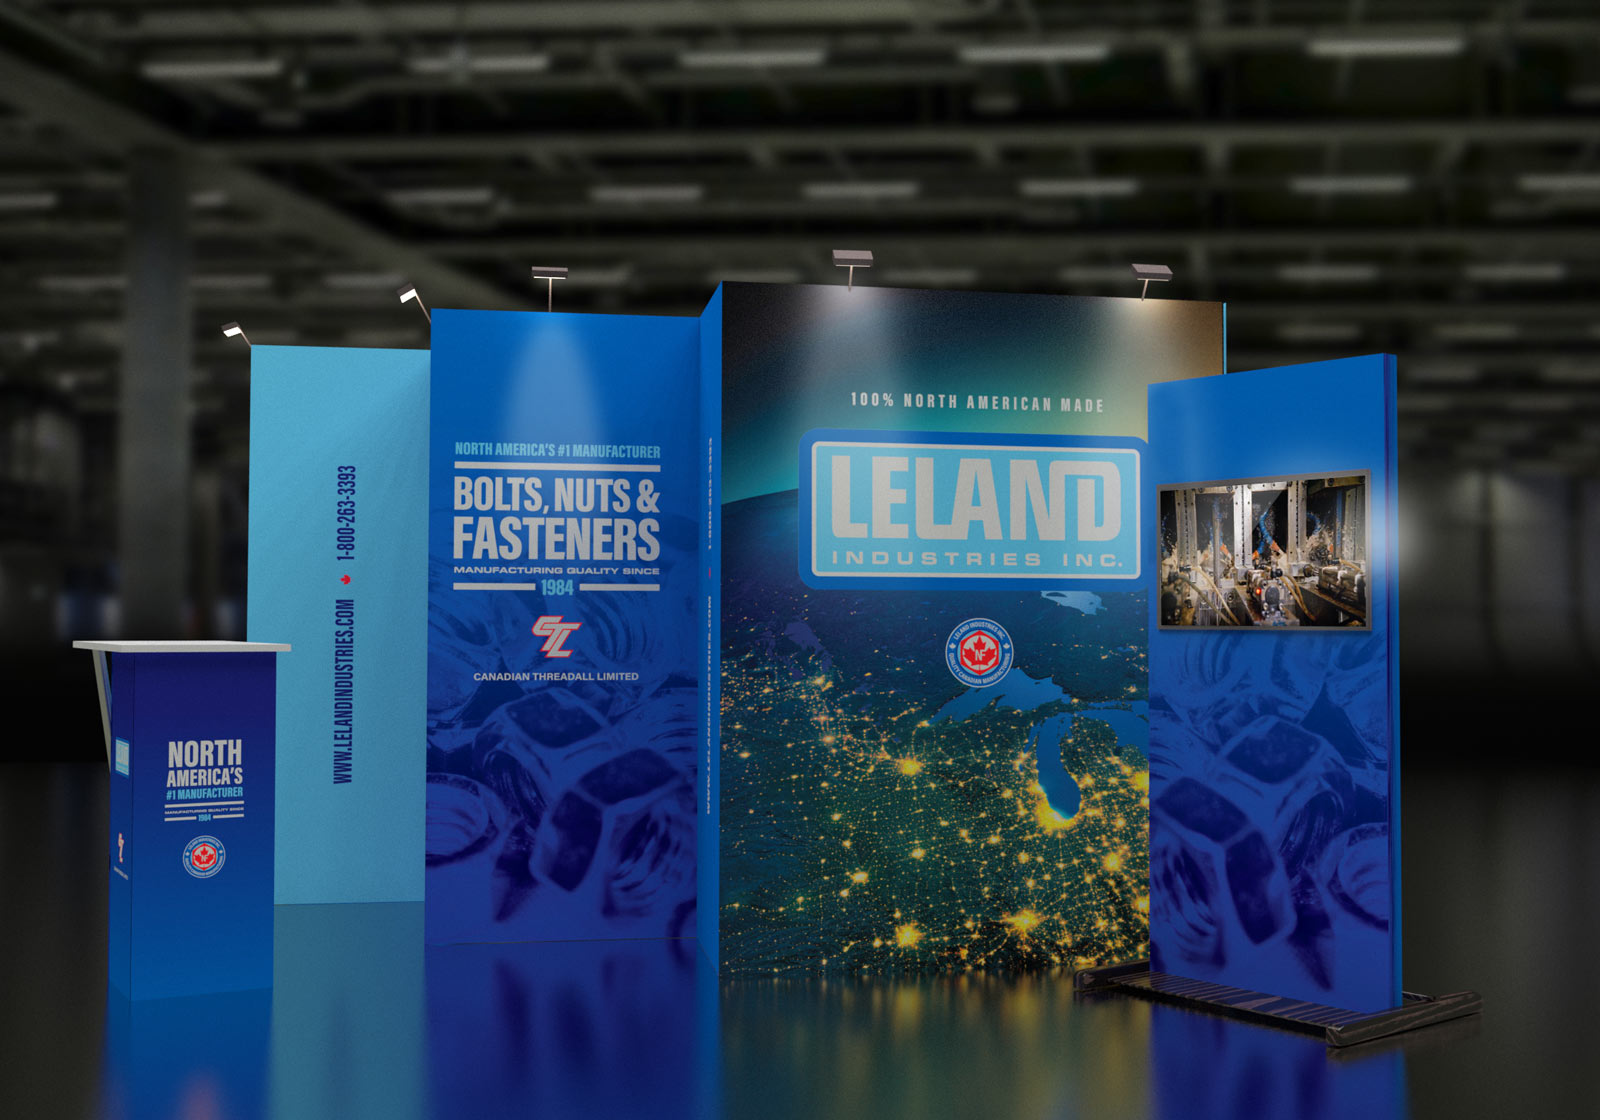 Leland trade show booth, Leland Industries